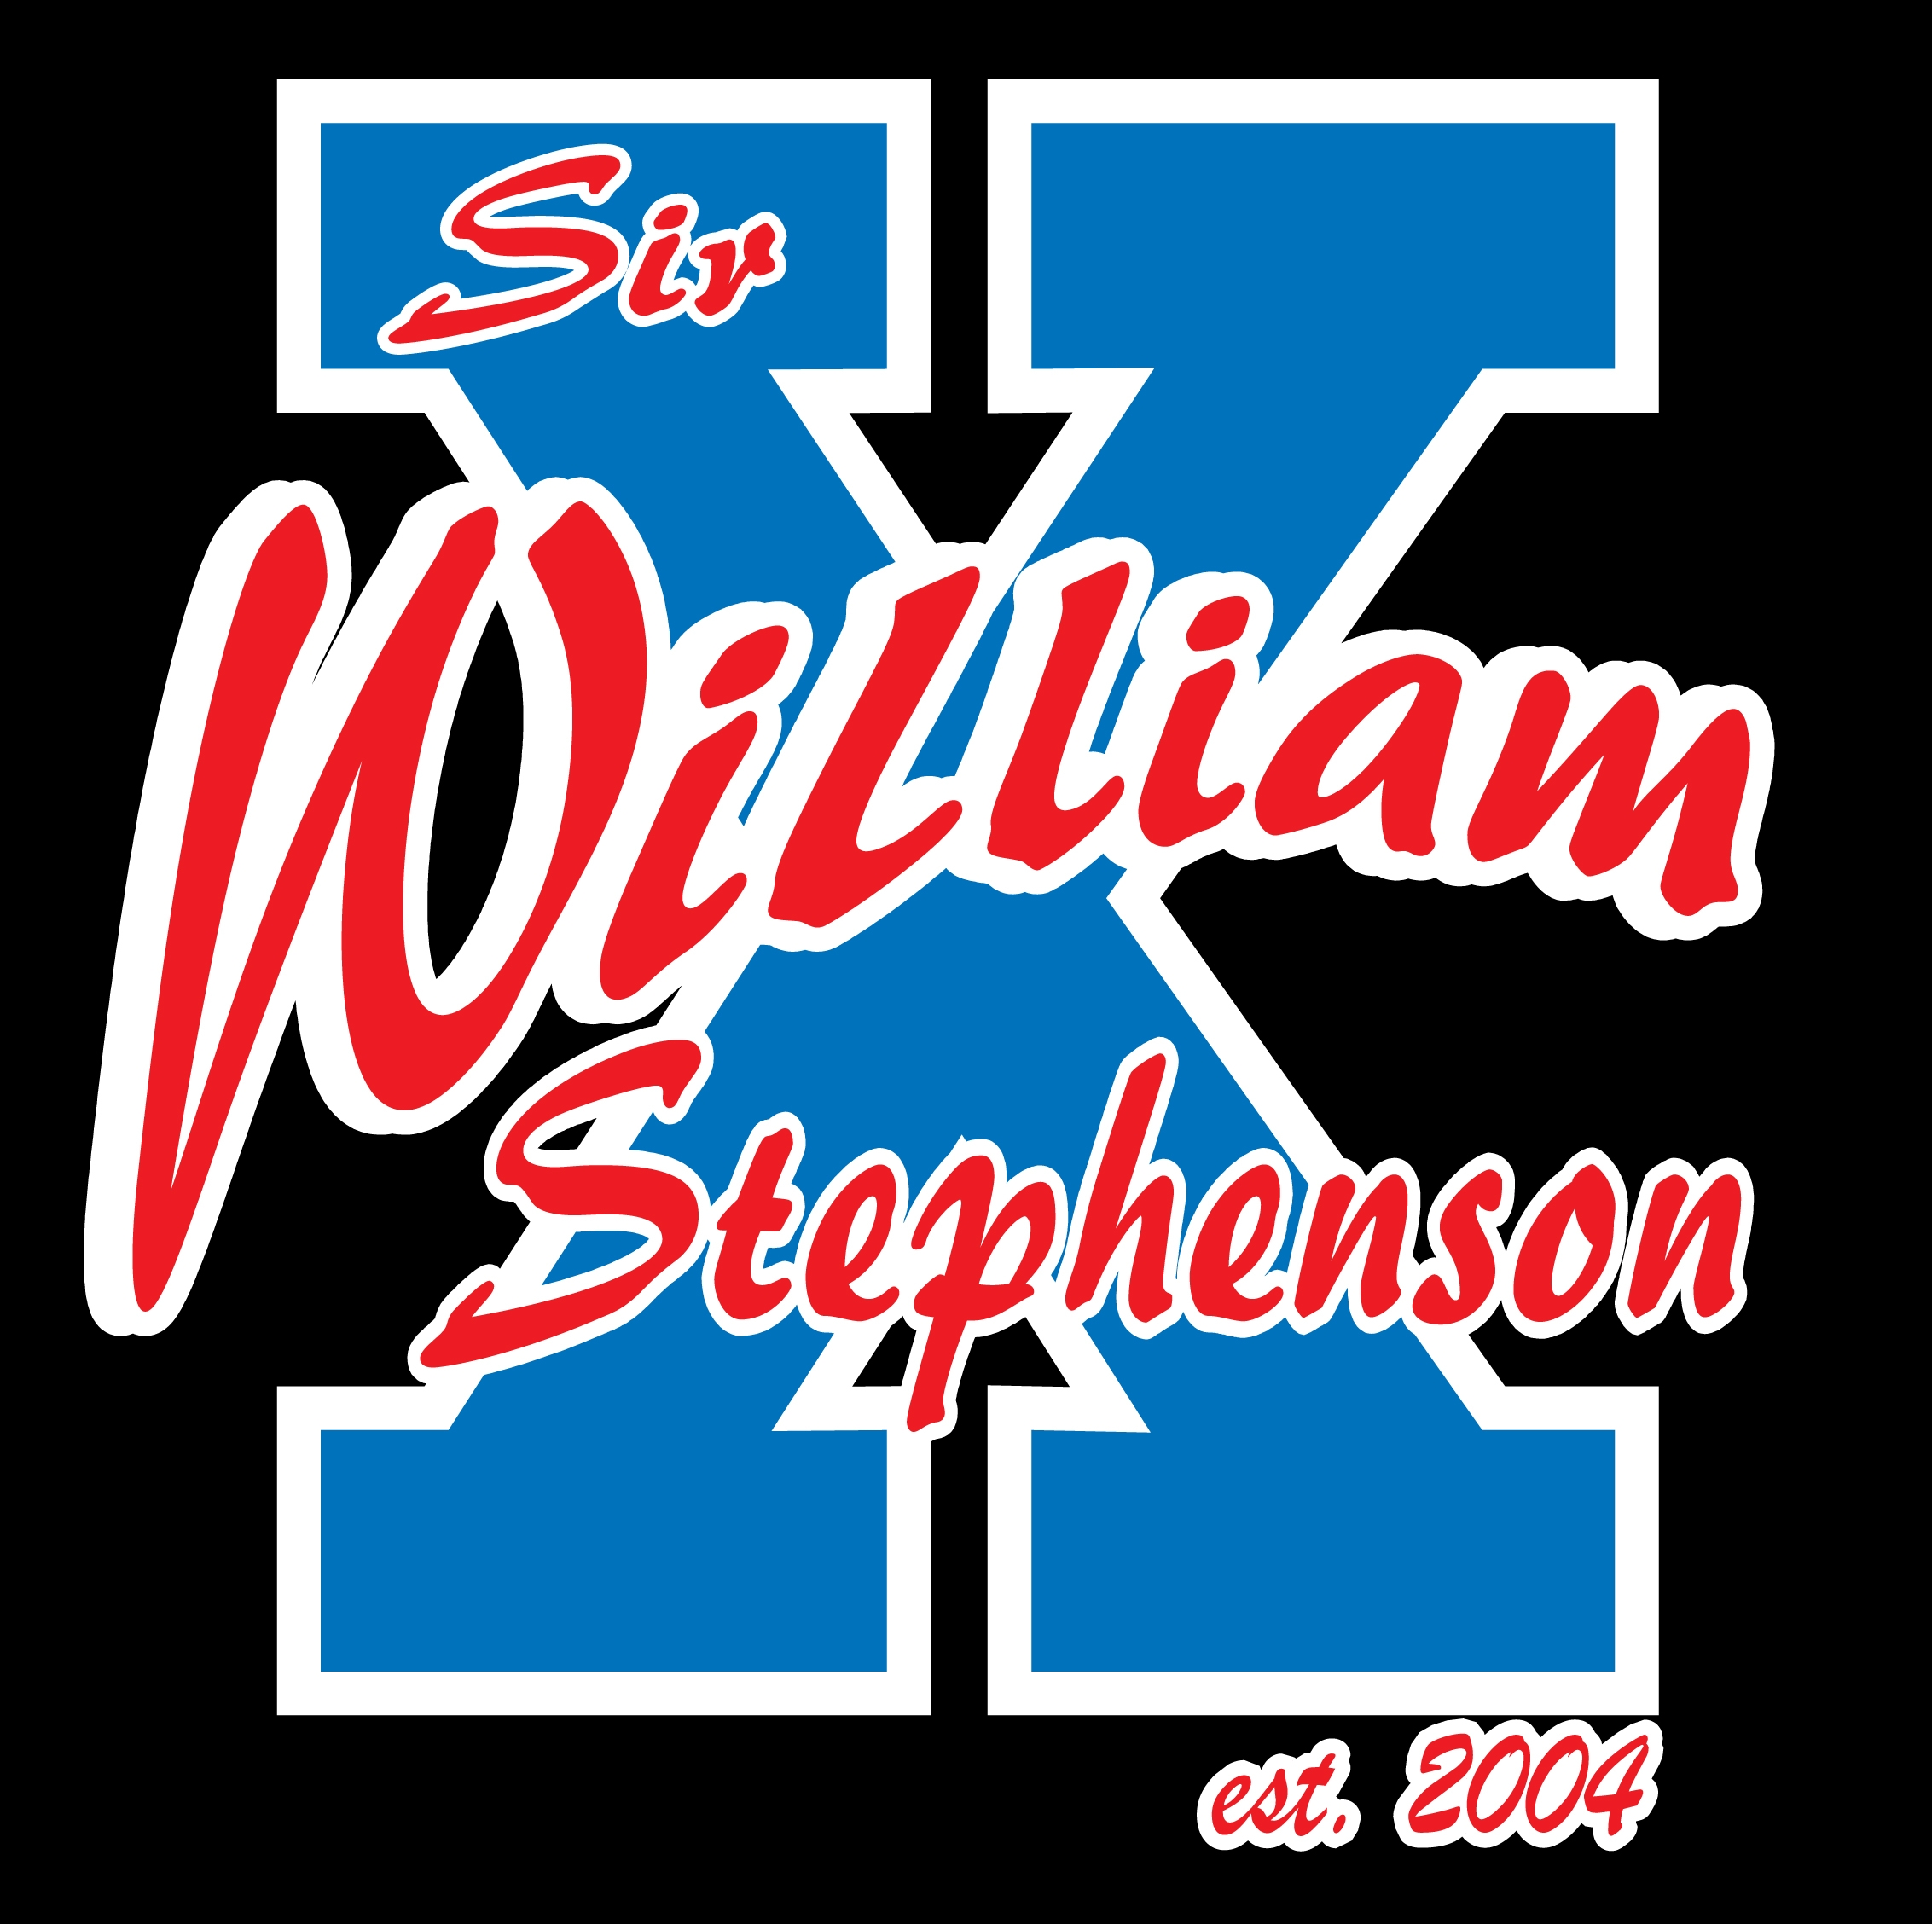 Sir William Stephenson Public School logo